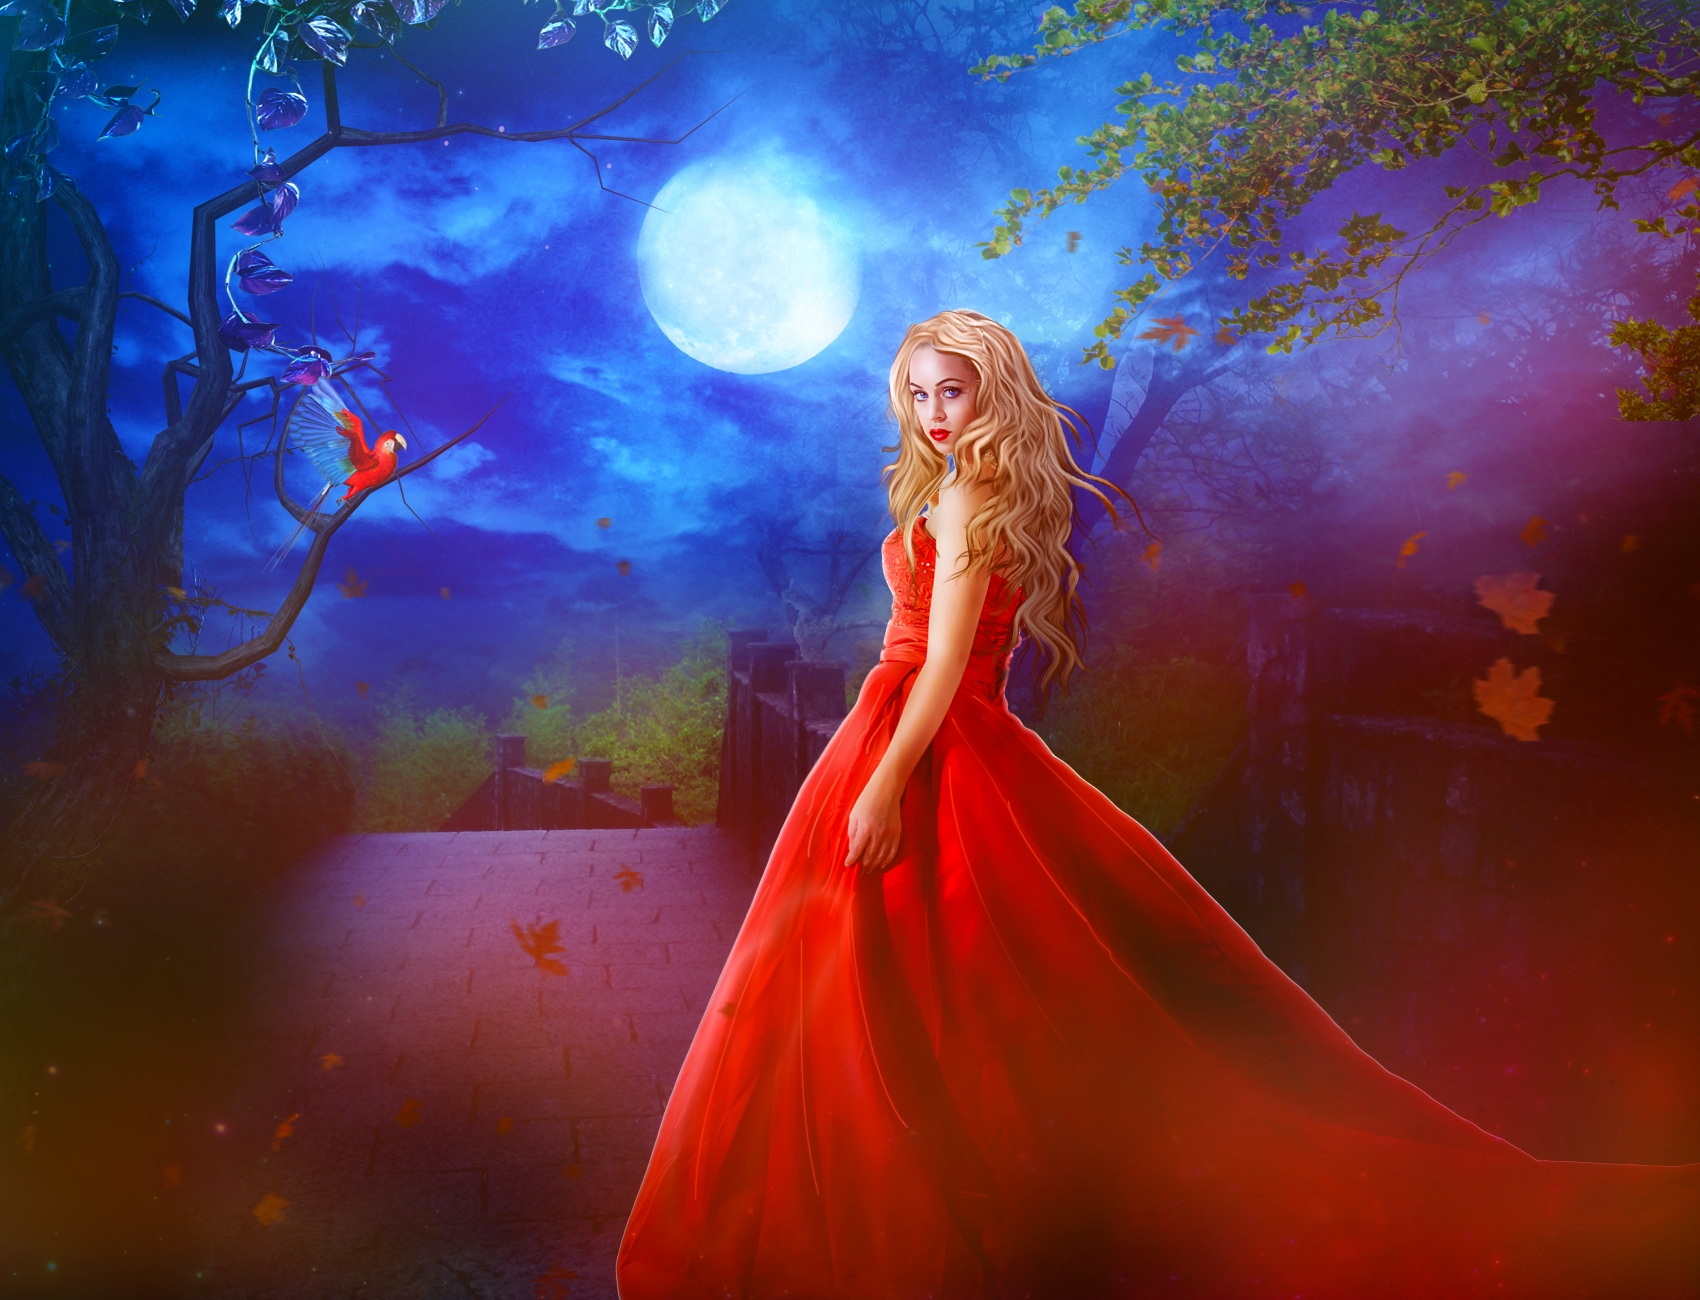 Full Moon Fantasy Wallpaper And Background Image 1700x1300 Id 680972 Wallpaper Abyss